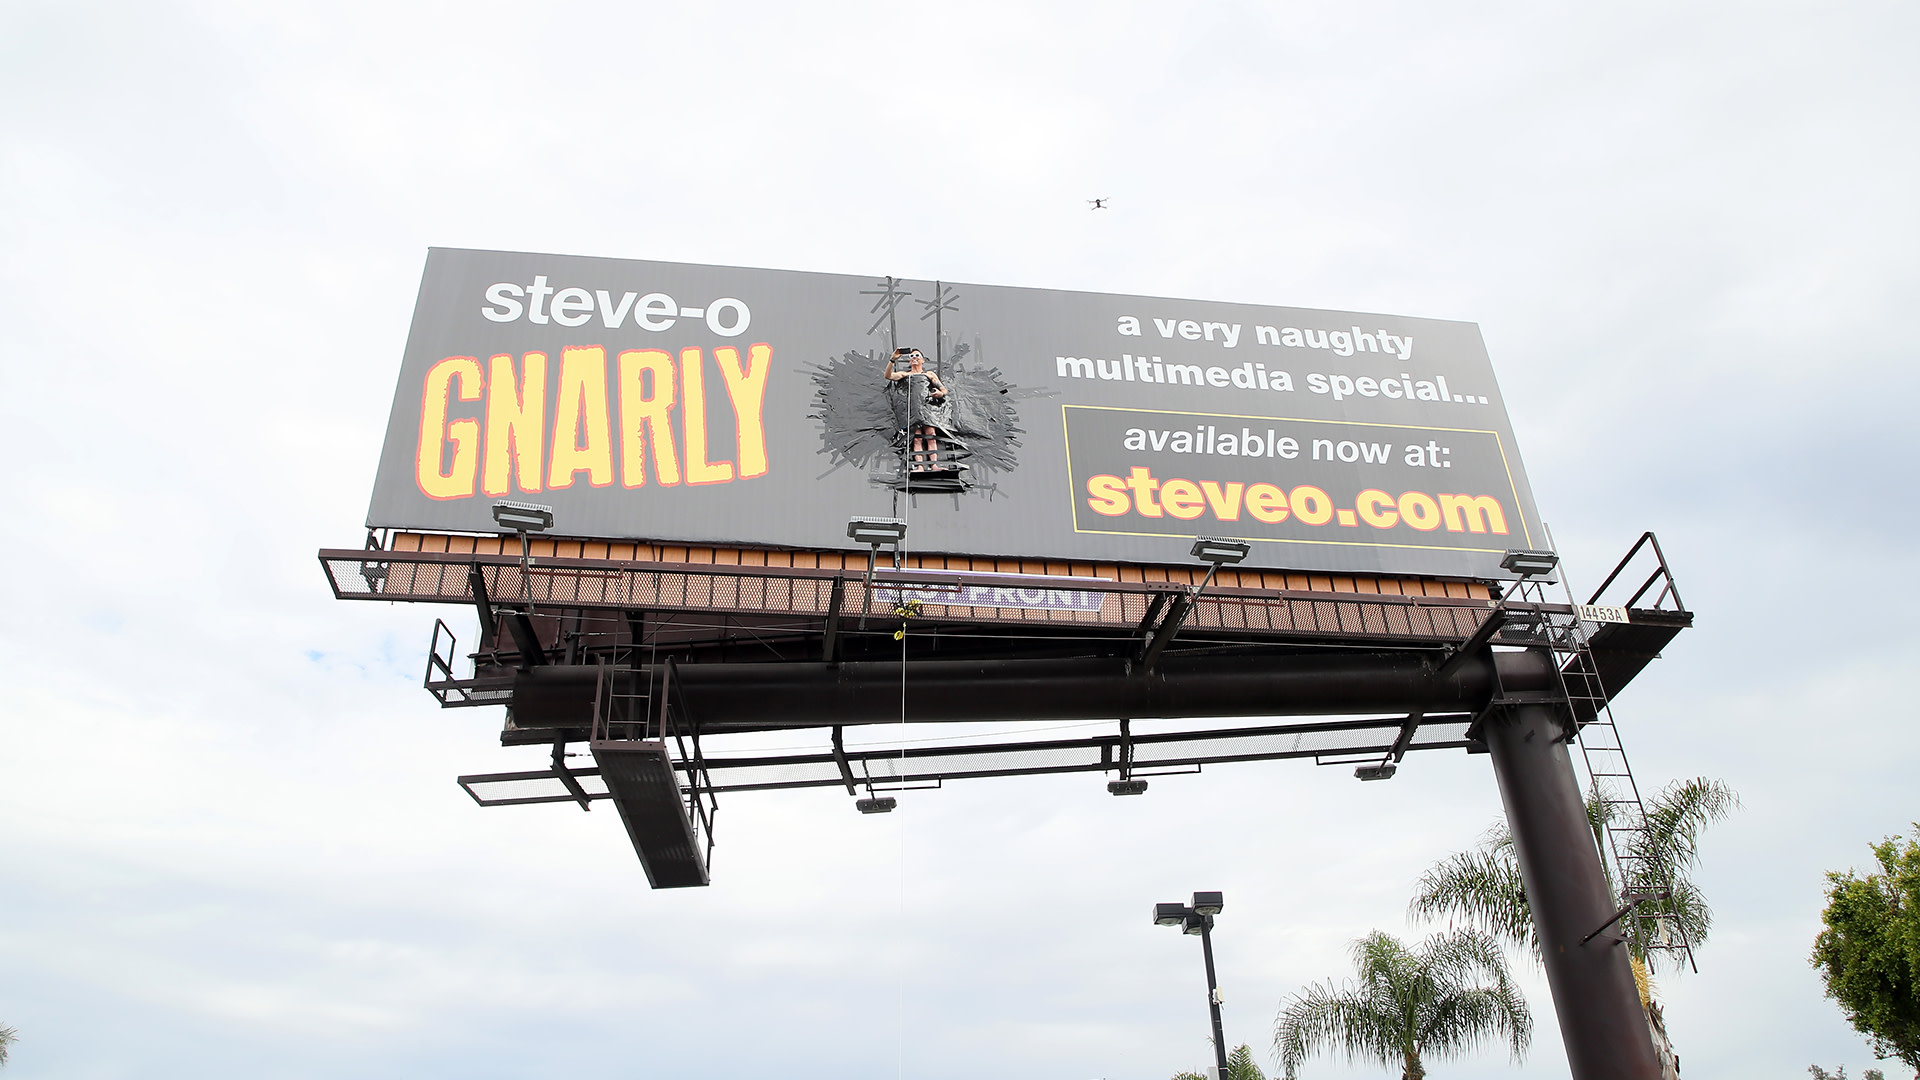 Steve-O Taped Himself to a Billboard to Promote His New Comedy Special